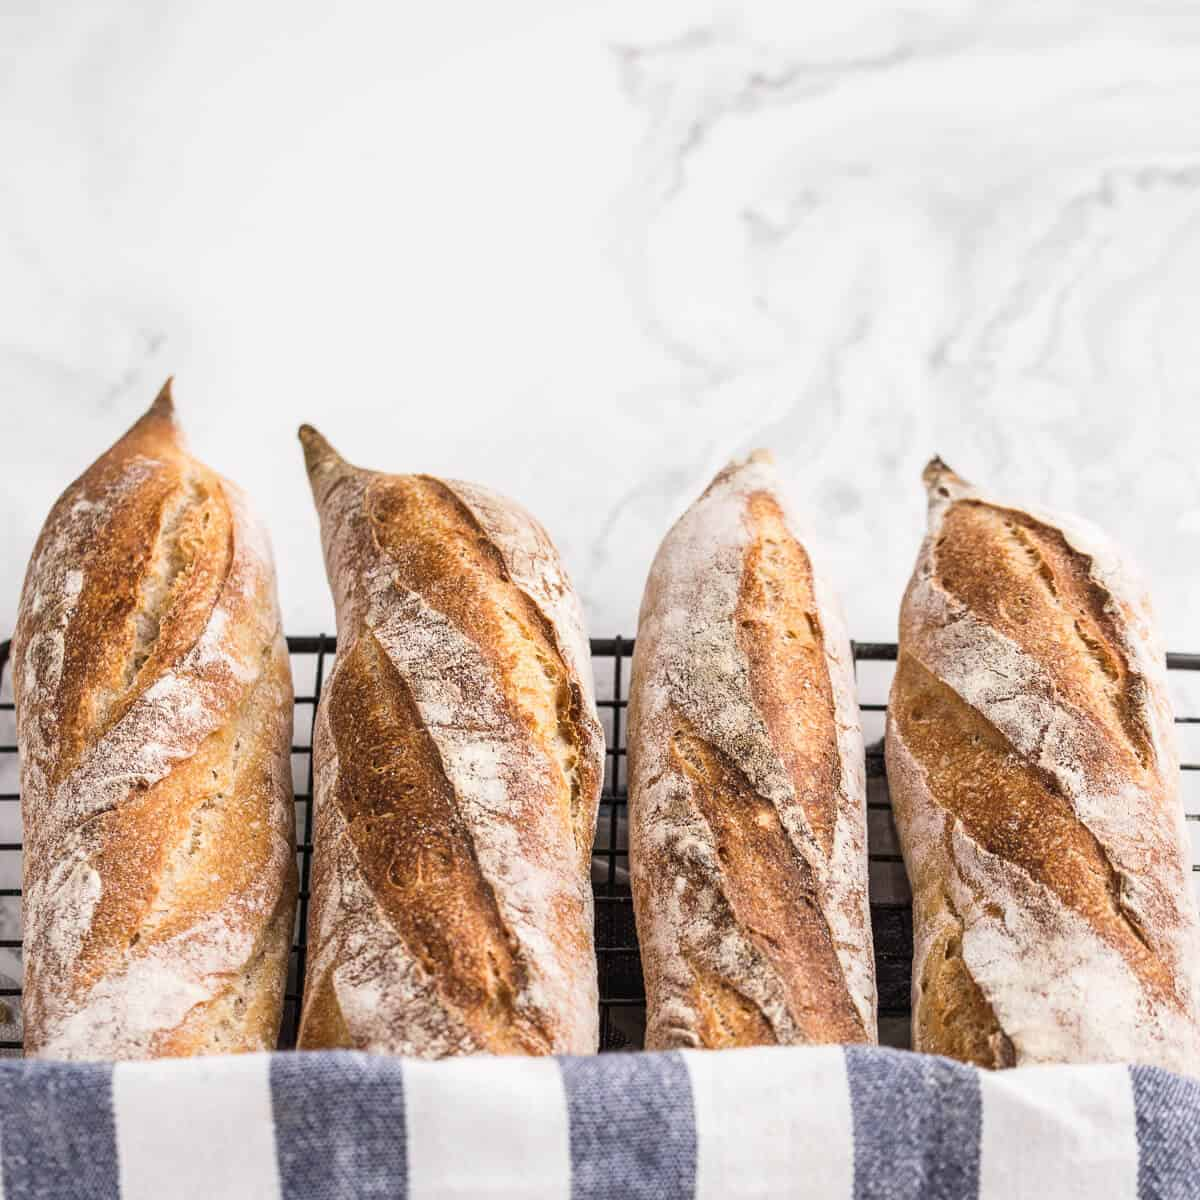 four baguettes on wire rack